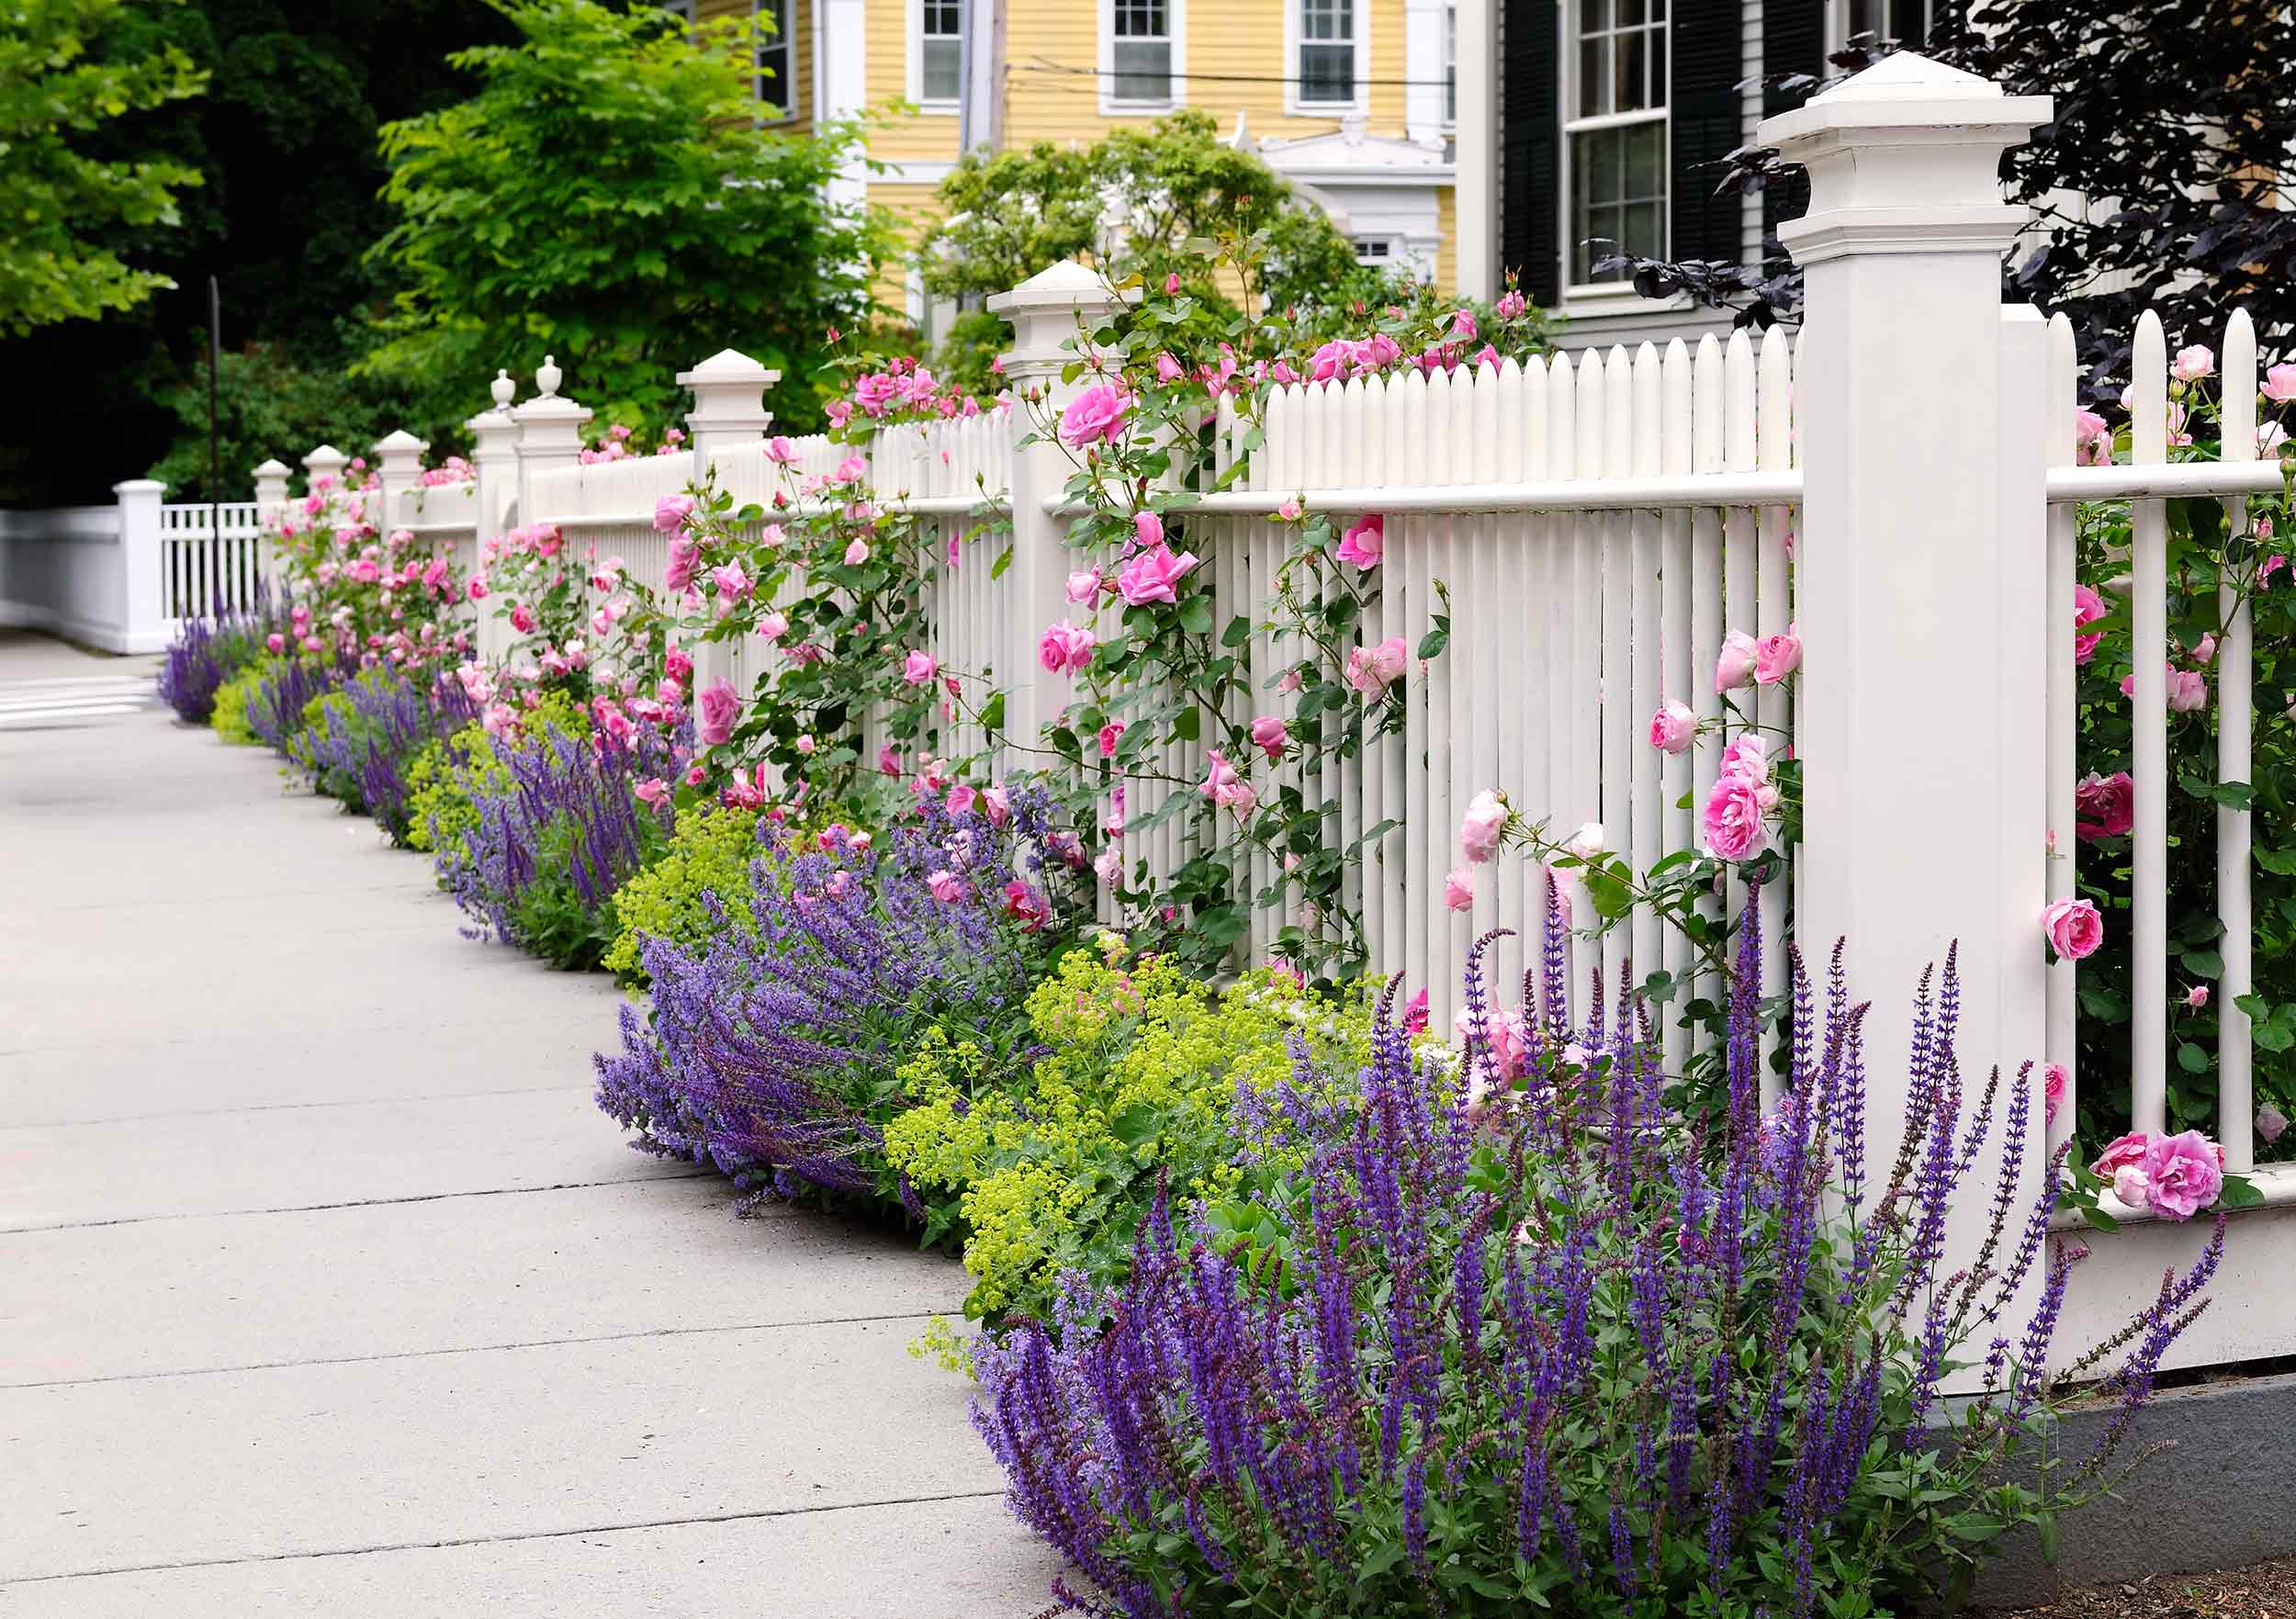 Landscaping - Fencing with mature flowers.